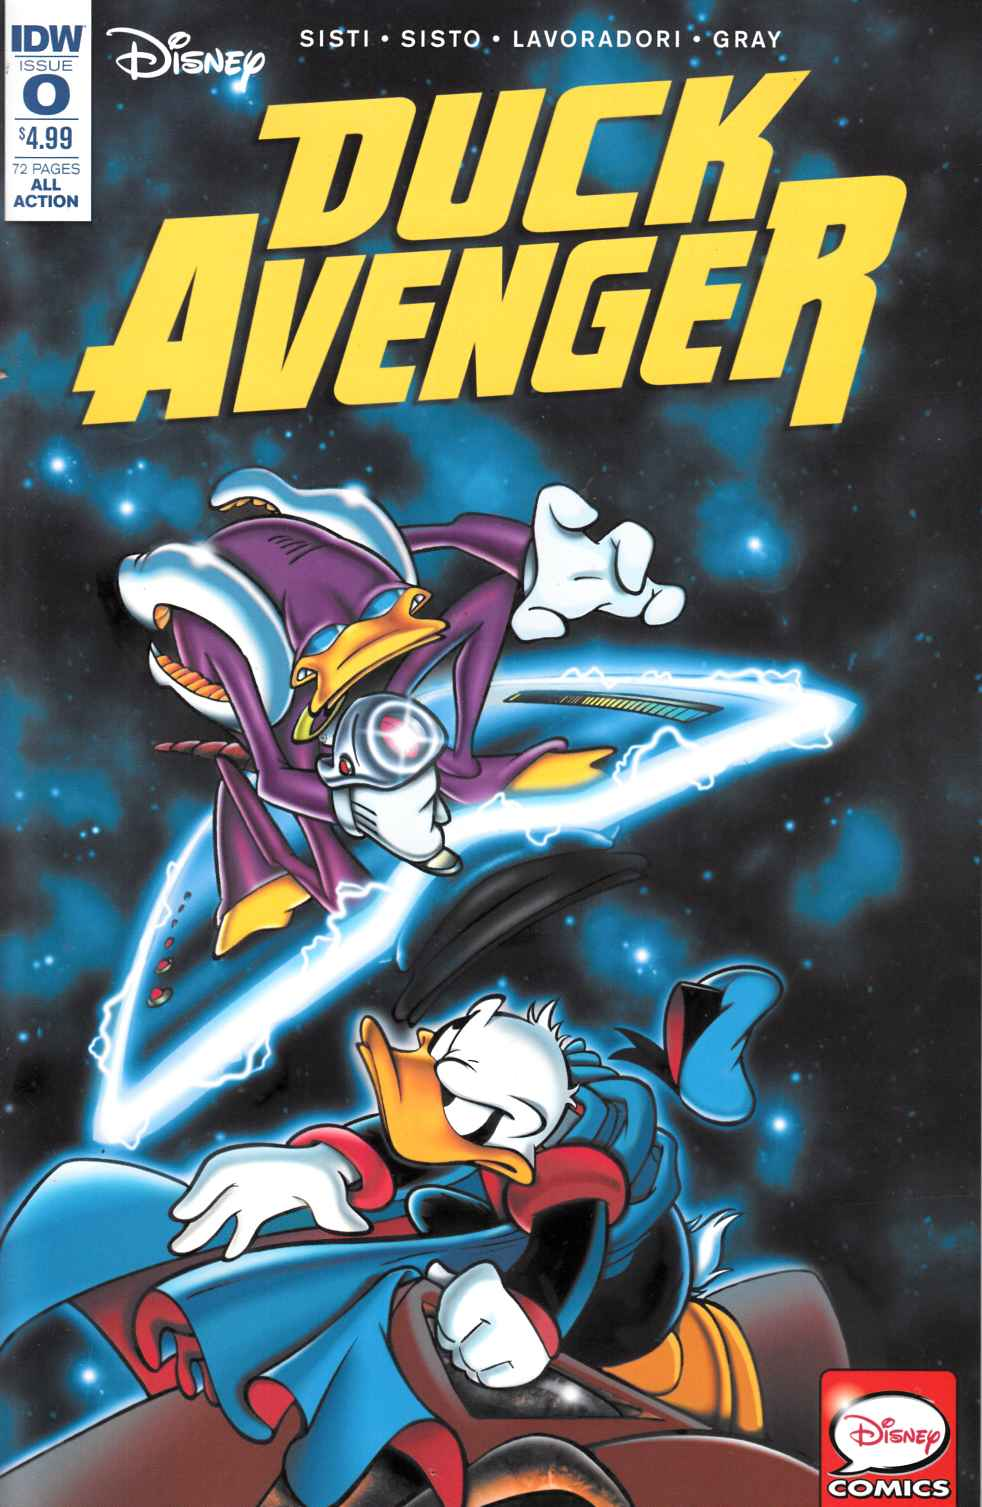 Duck Avenger #0 [IDW Comic]